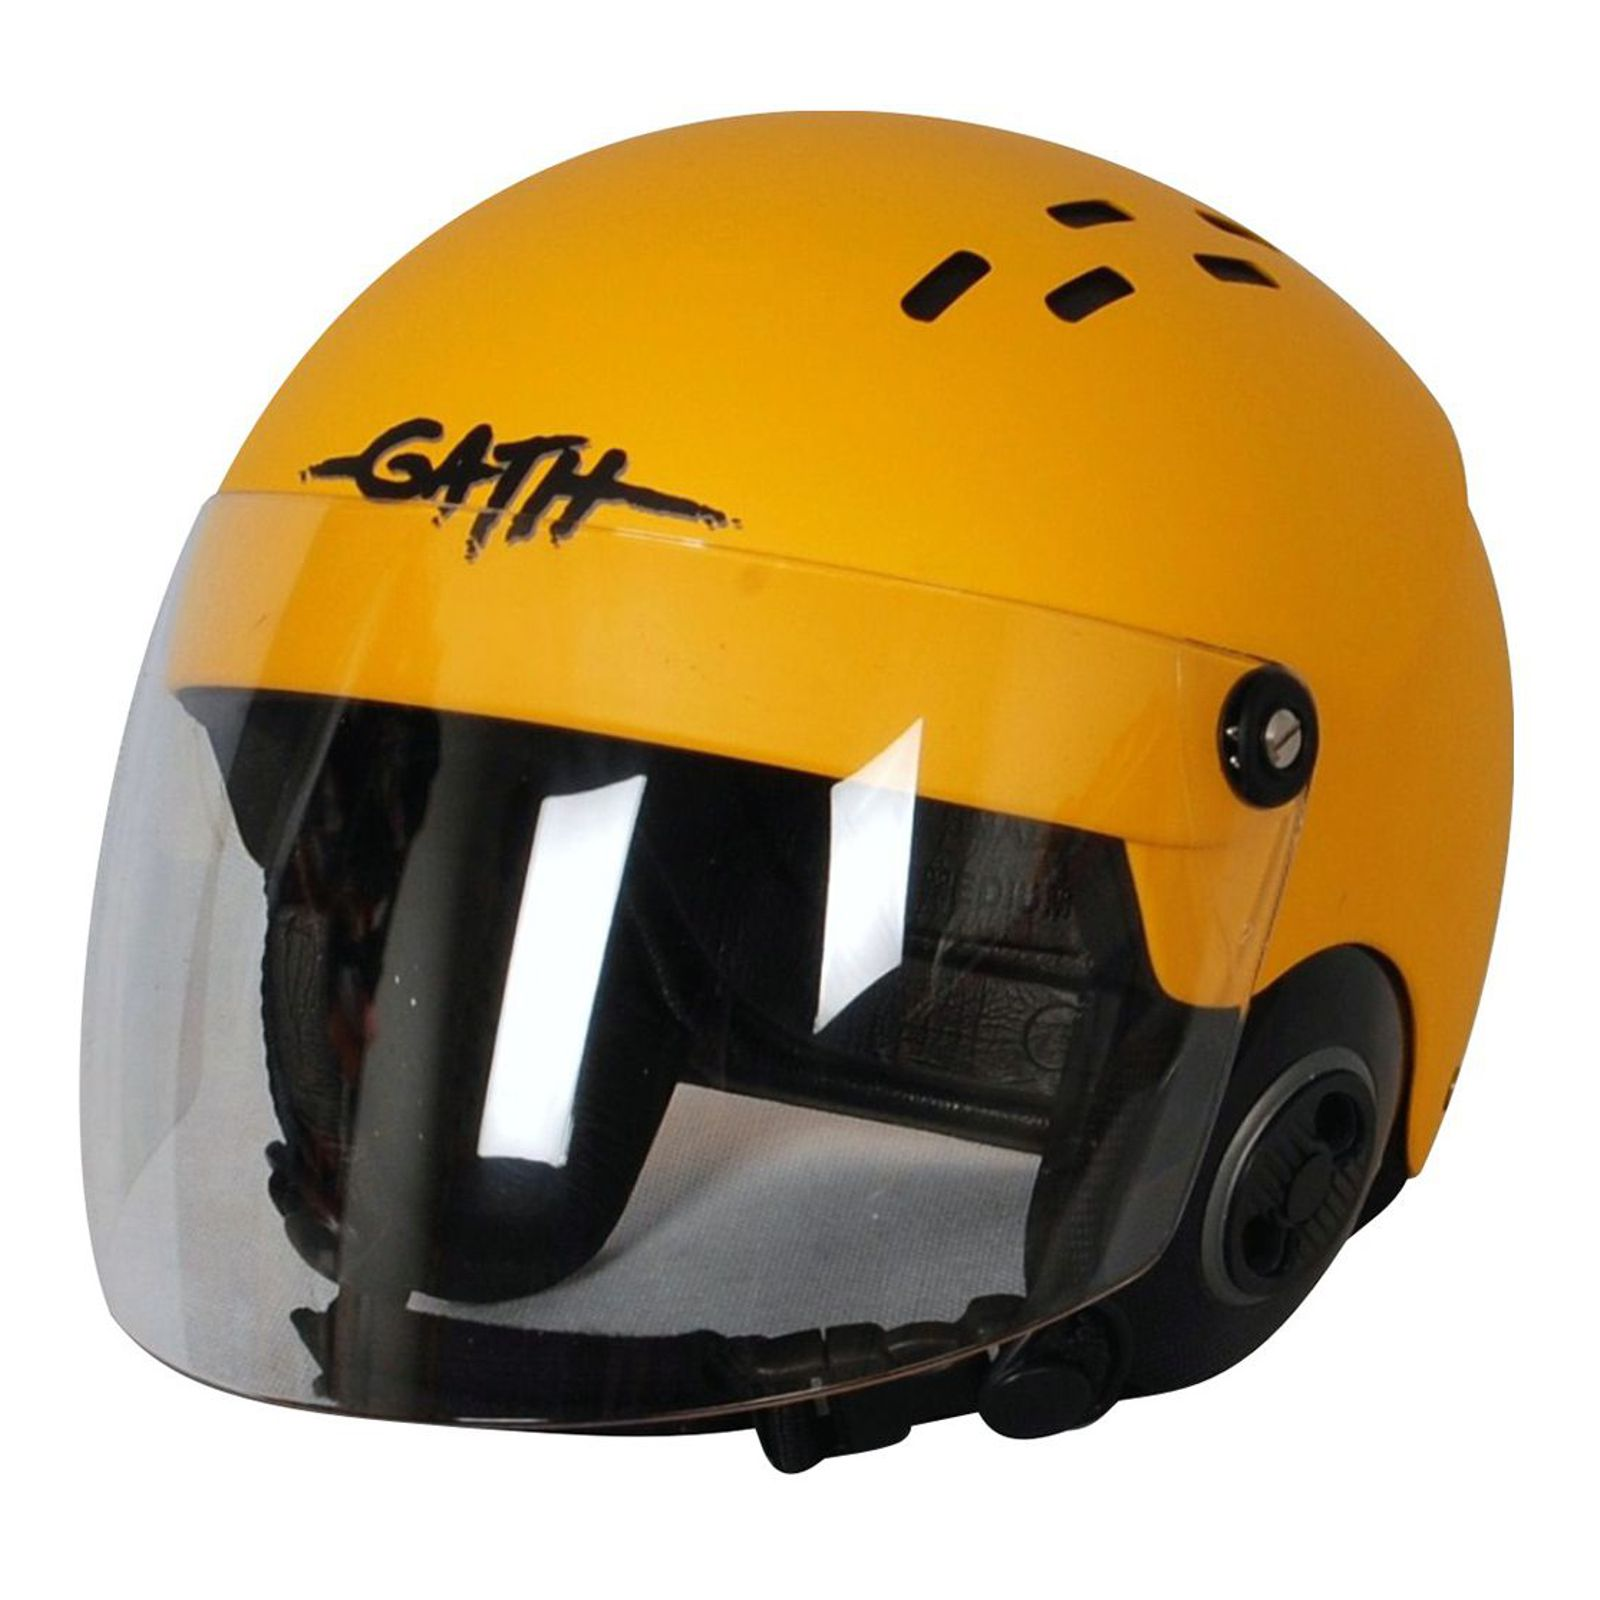 GATH Helm RESCUE Safety Gelb matt Gr S mit klarem Vollvisier